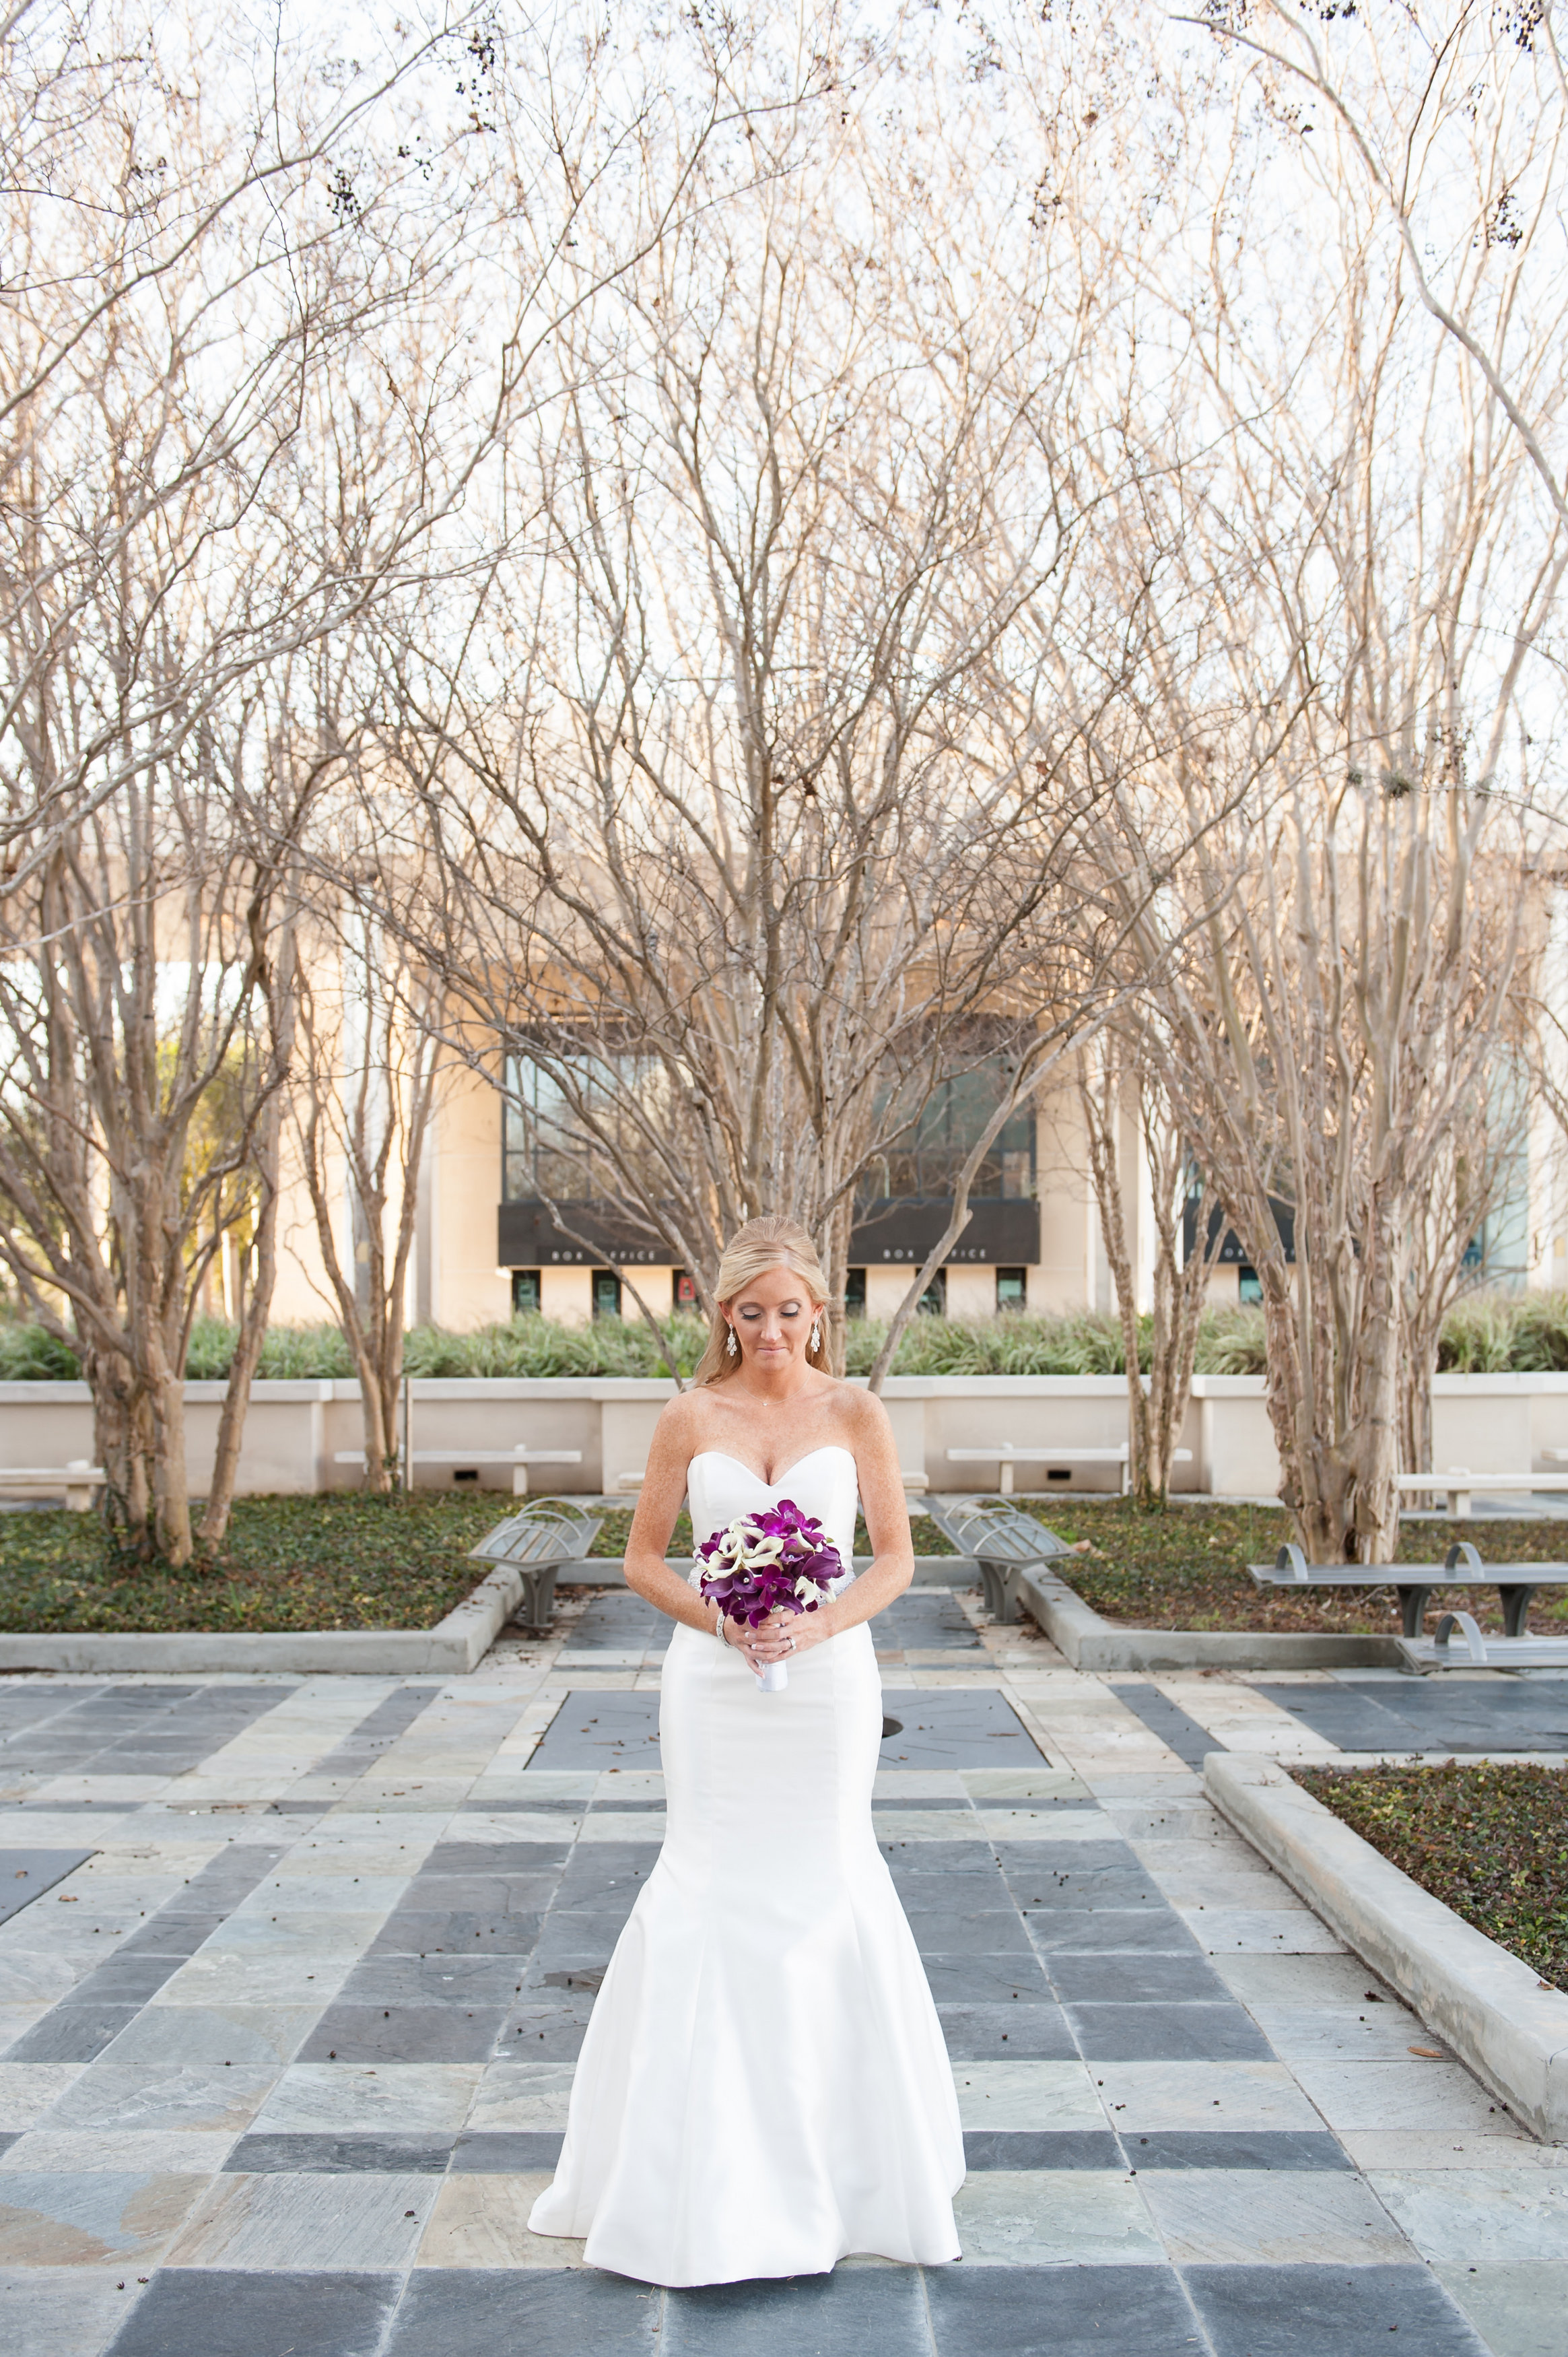 The bride wore a fit and flare gown and carried a bouquet of Picasso calla lilies and orchids